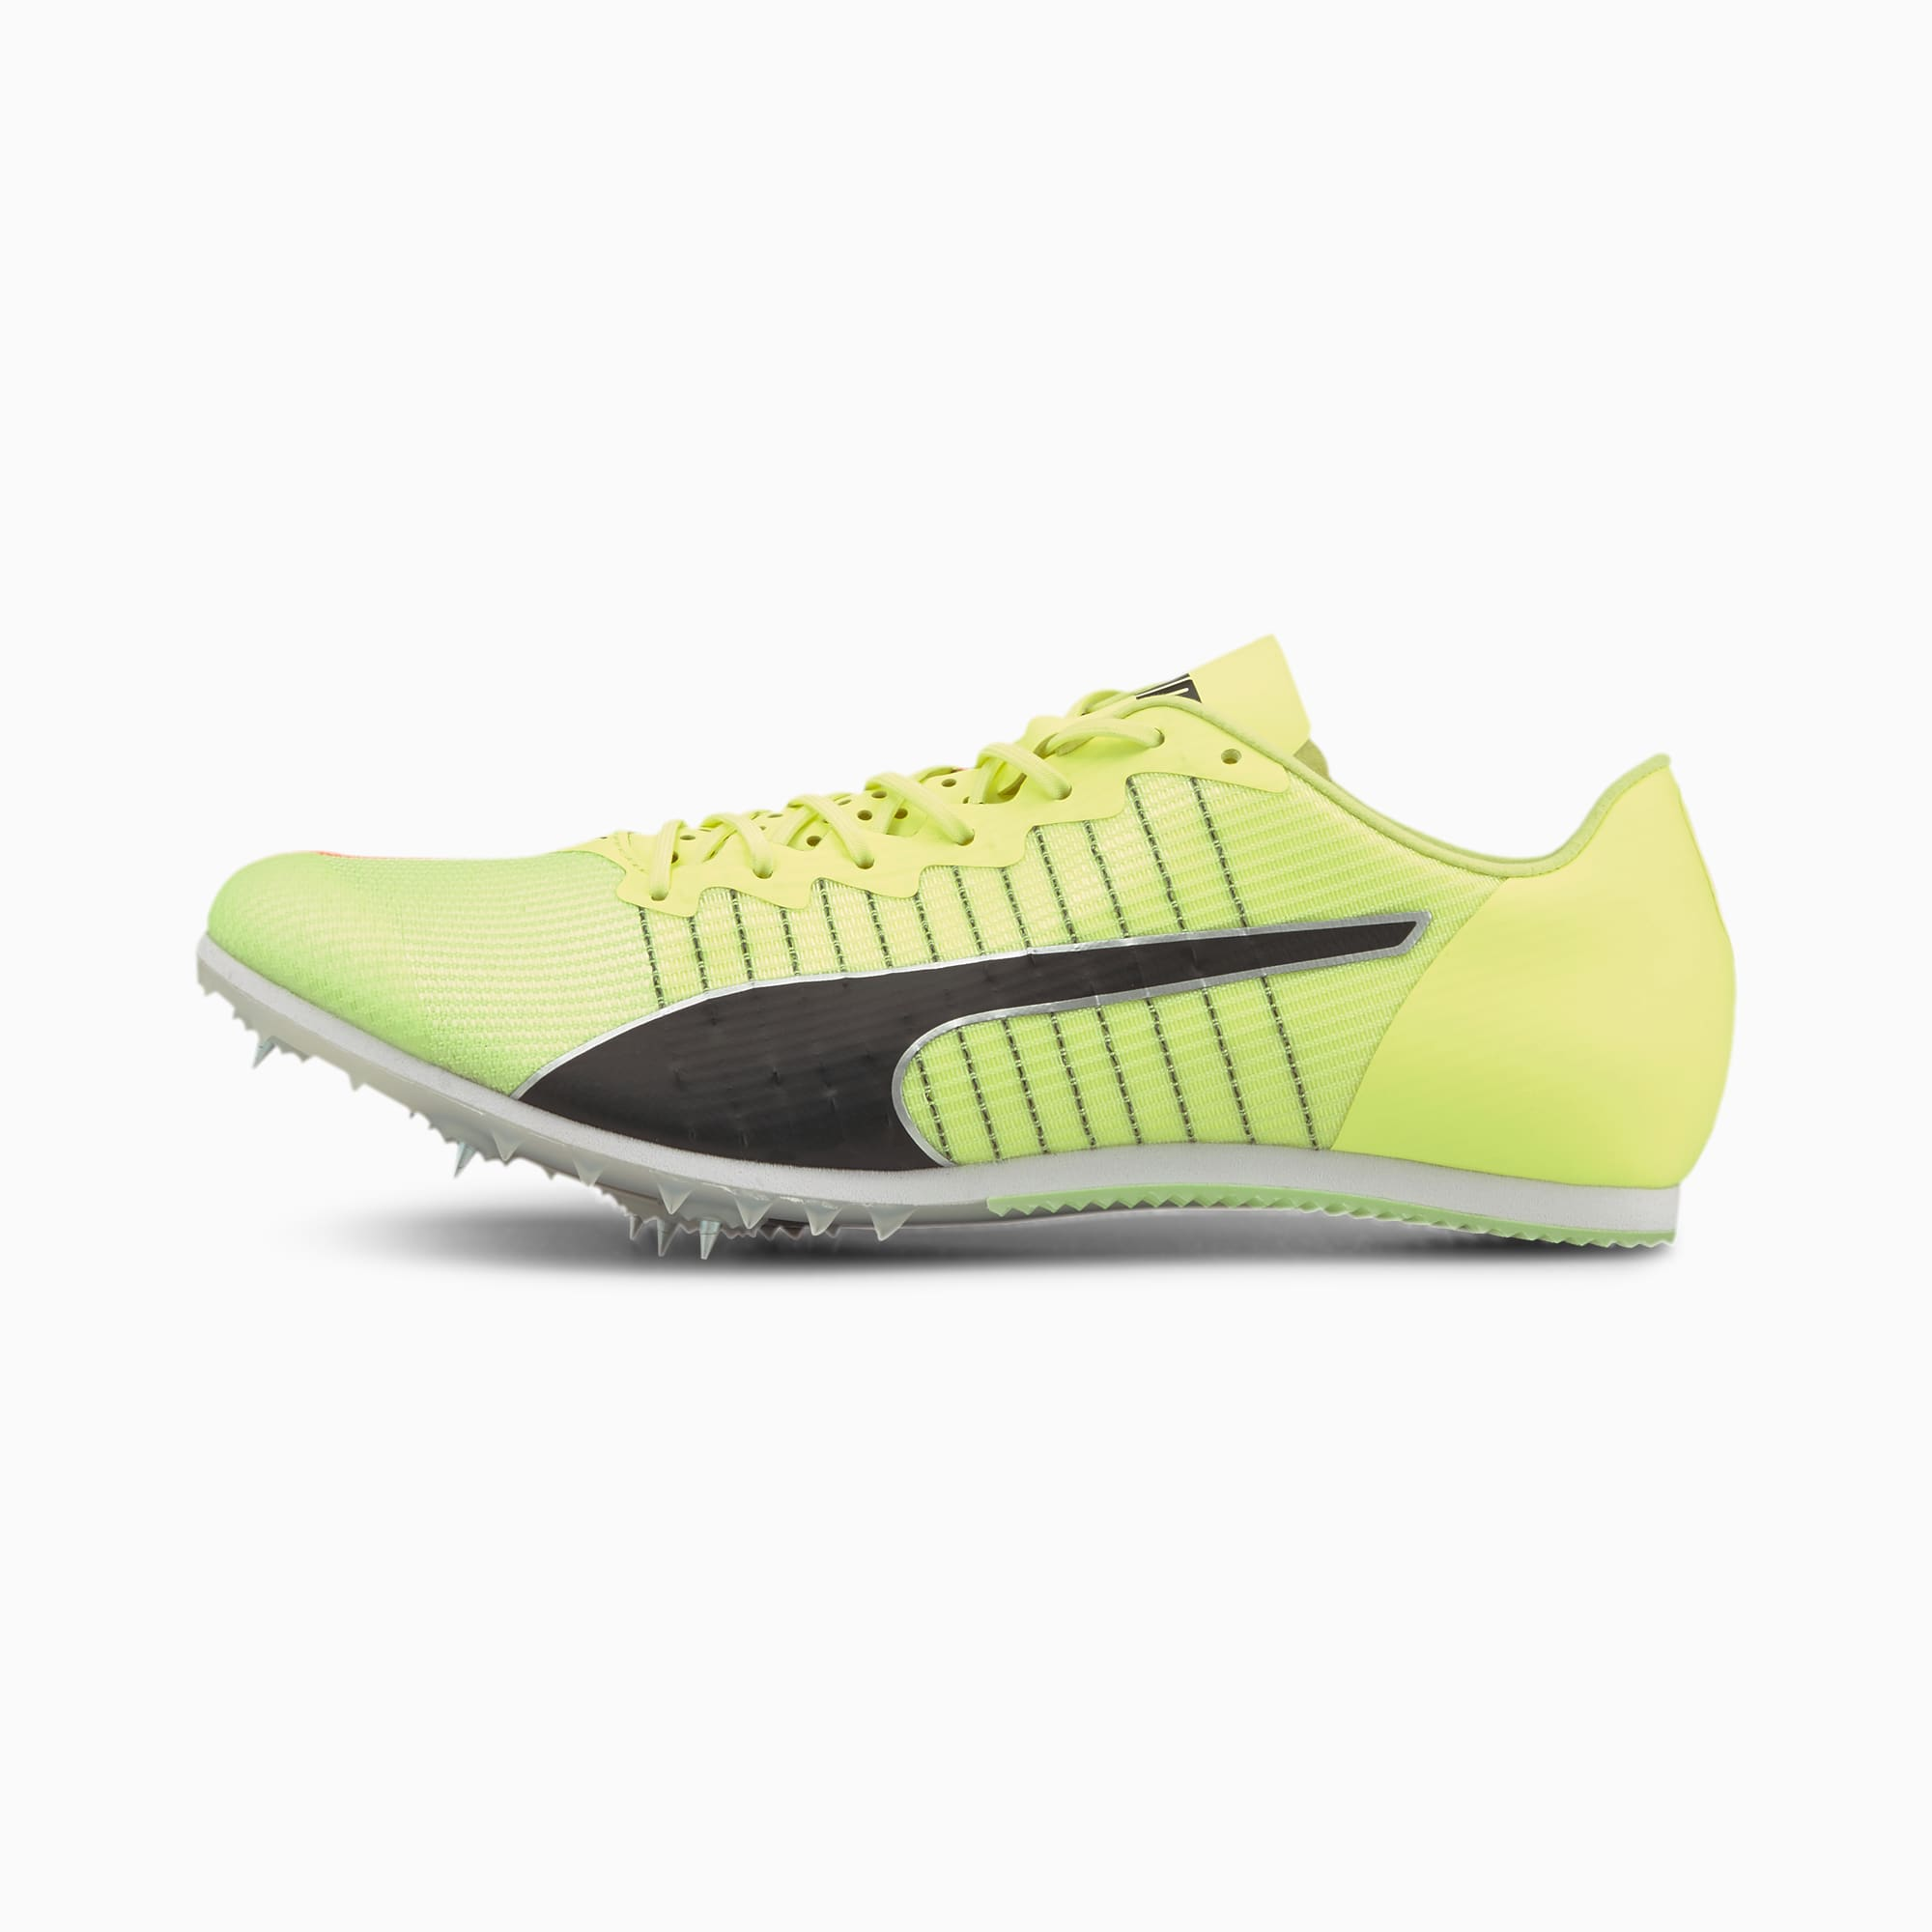 evoSPEED Tokyo Future JUMP Track and Field Shoes